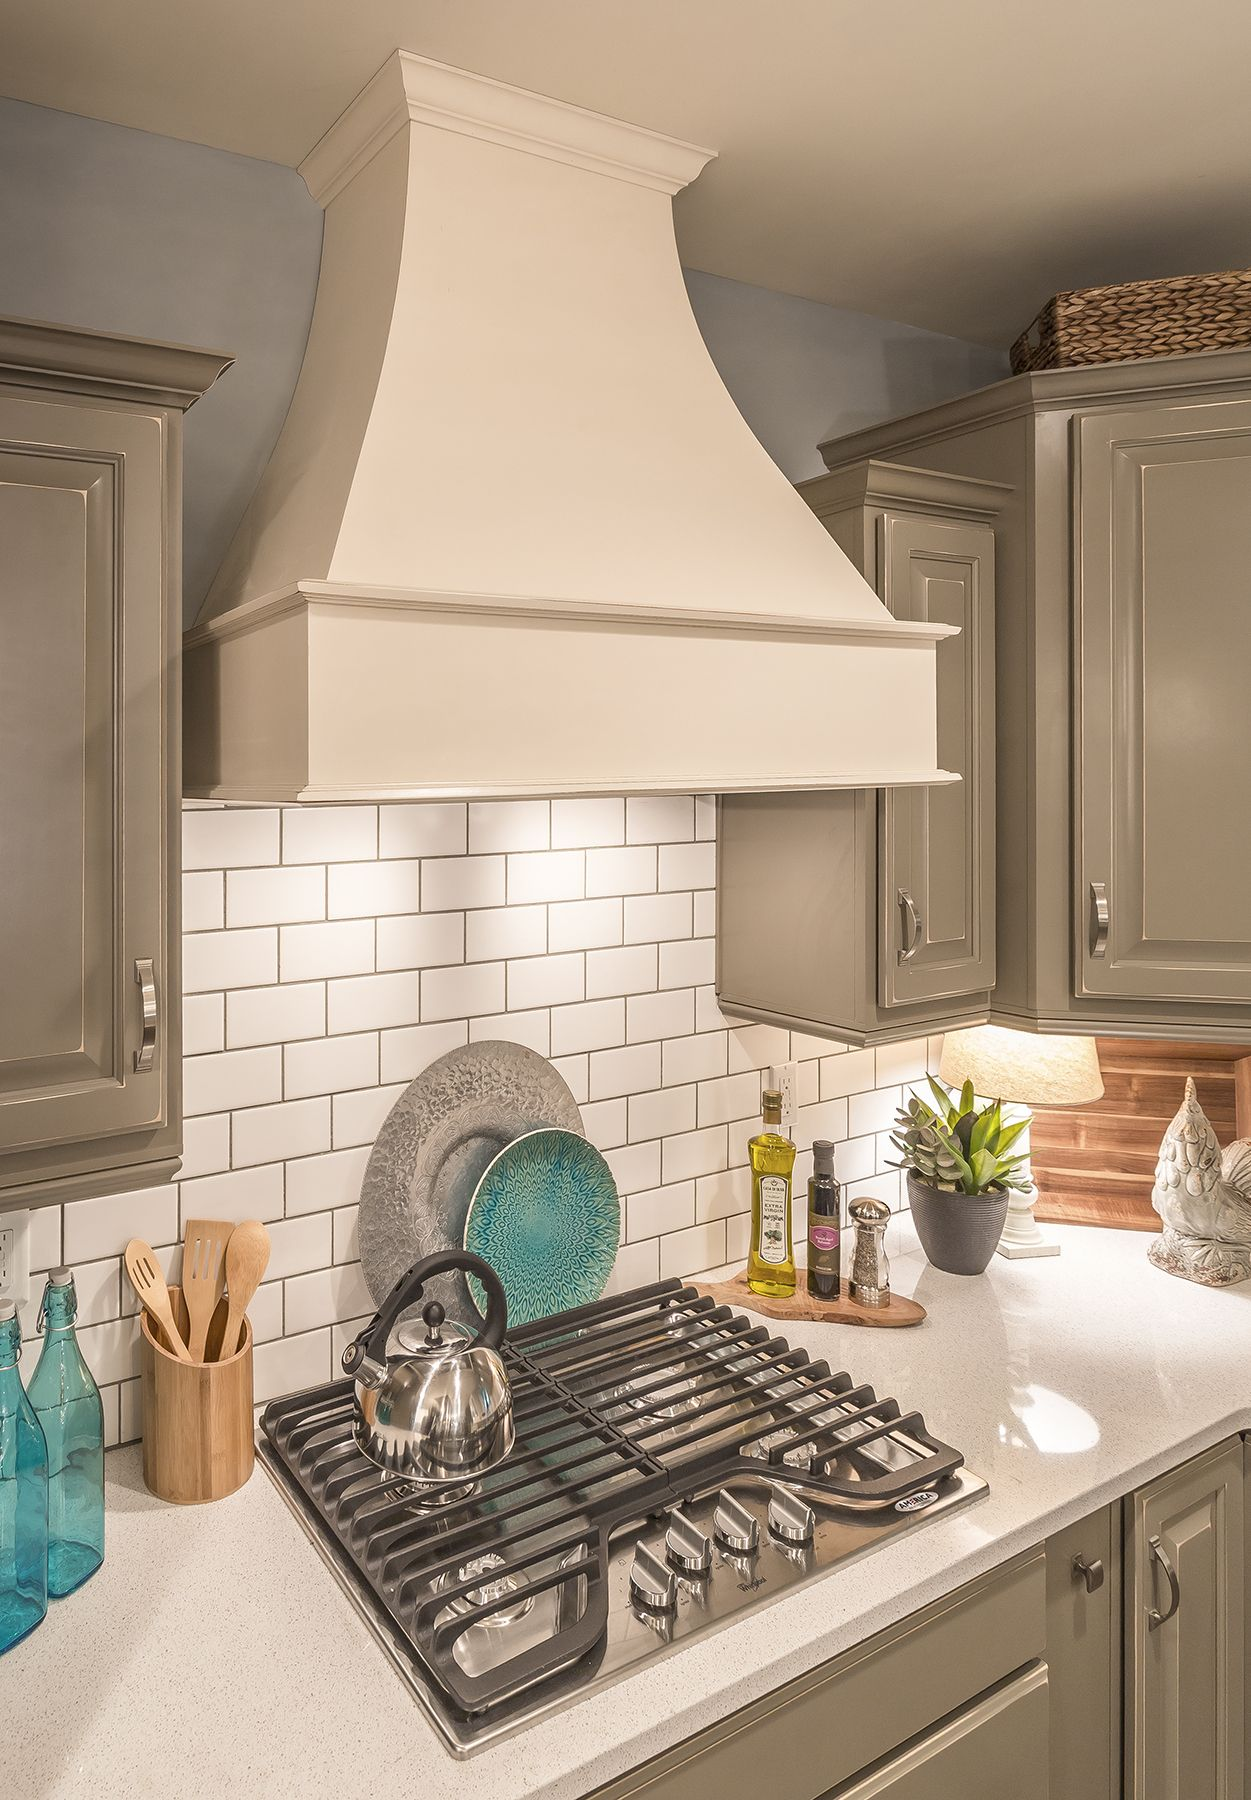 Artisan Range Hood From Legacycrafted Love The Color Combo Modular Homes Modular Home Manufacturers Tiny House Inspiration